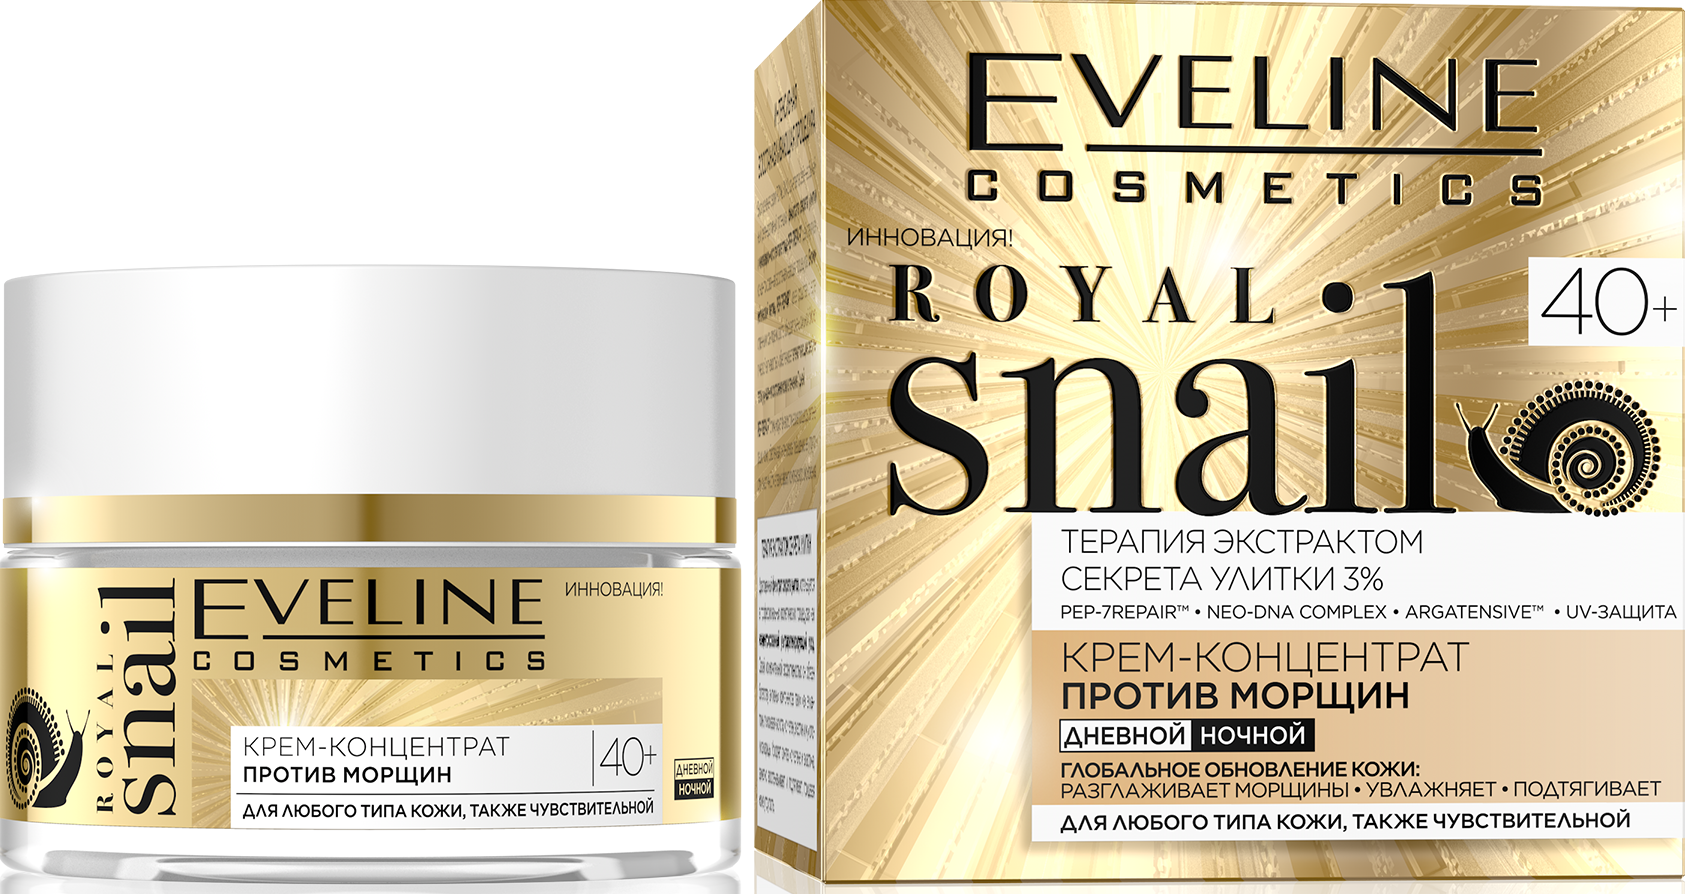 The cream-concentrate anti-wrinkle 40+ for all skin types, also sensitive series royal snail, Avon, 50 ml